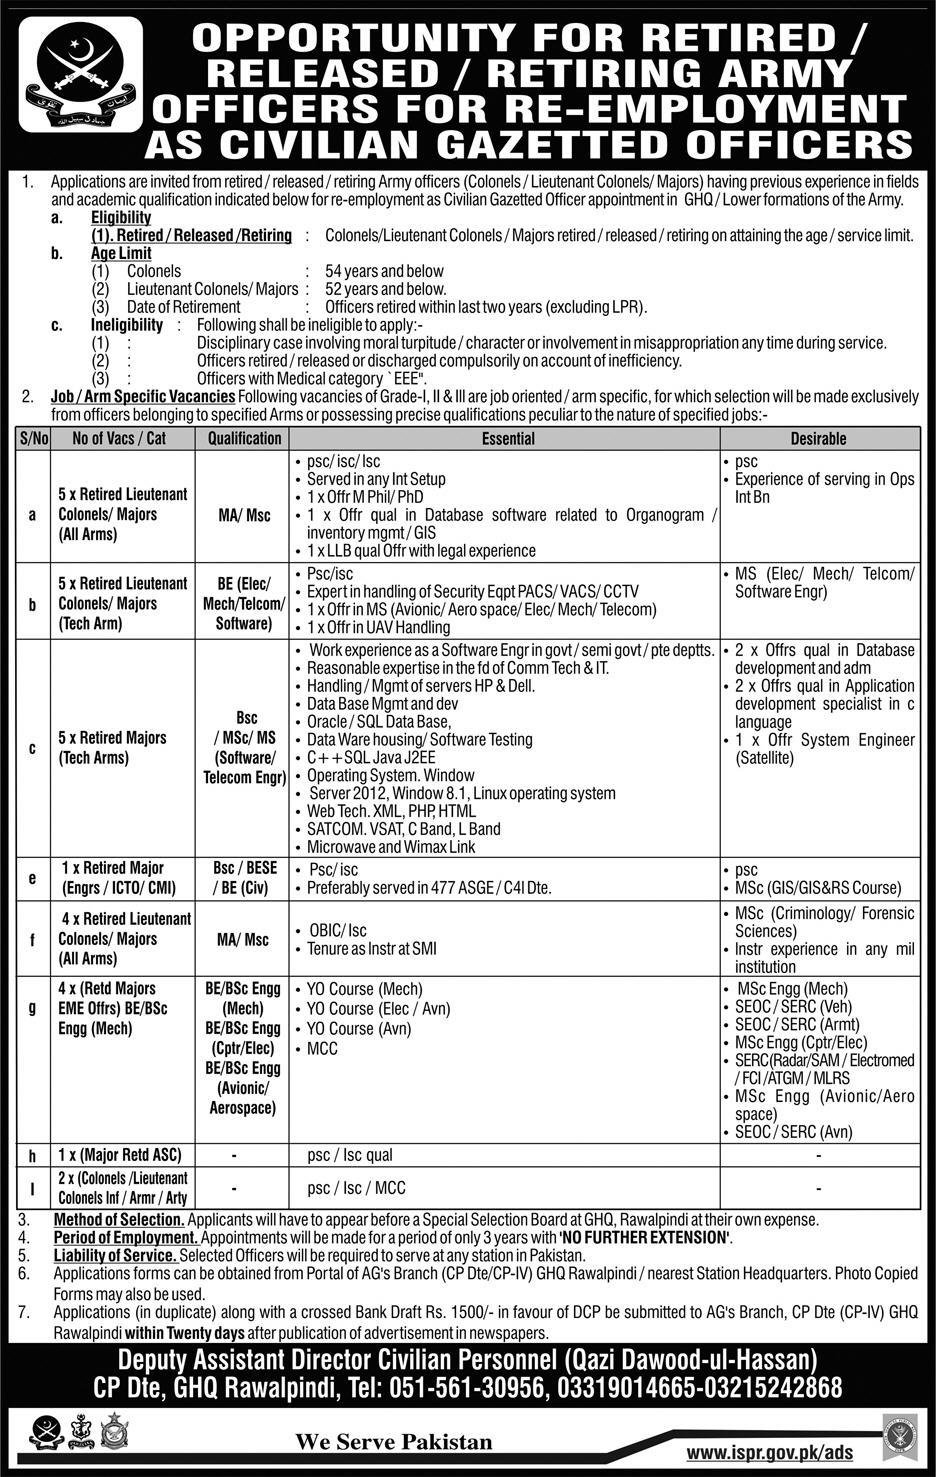 Retired Army Officer Jobs As A Civilian Gazetted Officer 2018